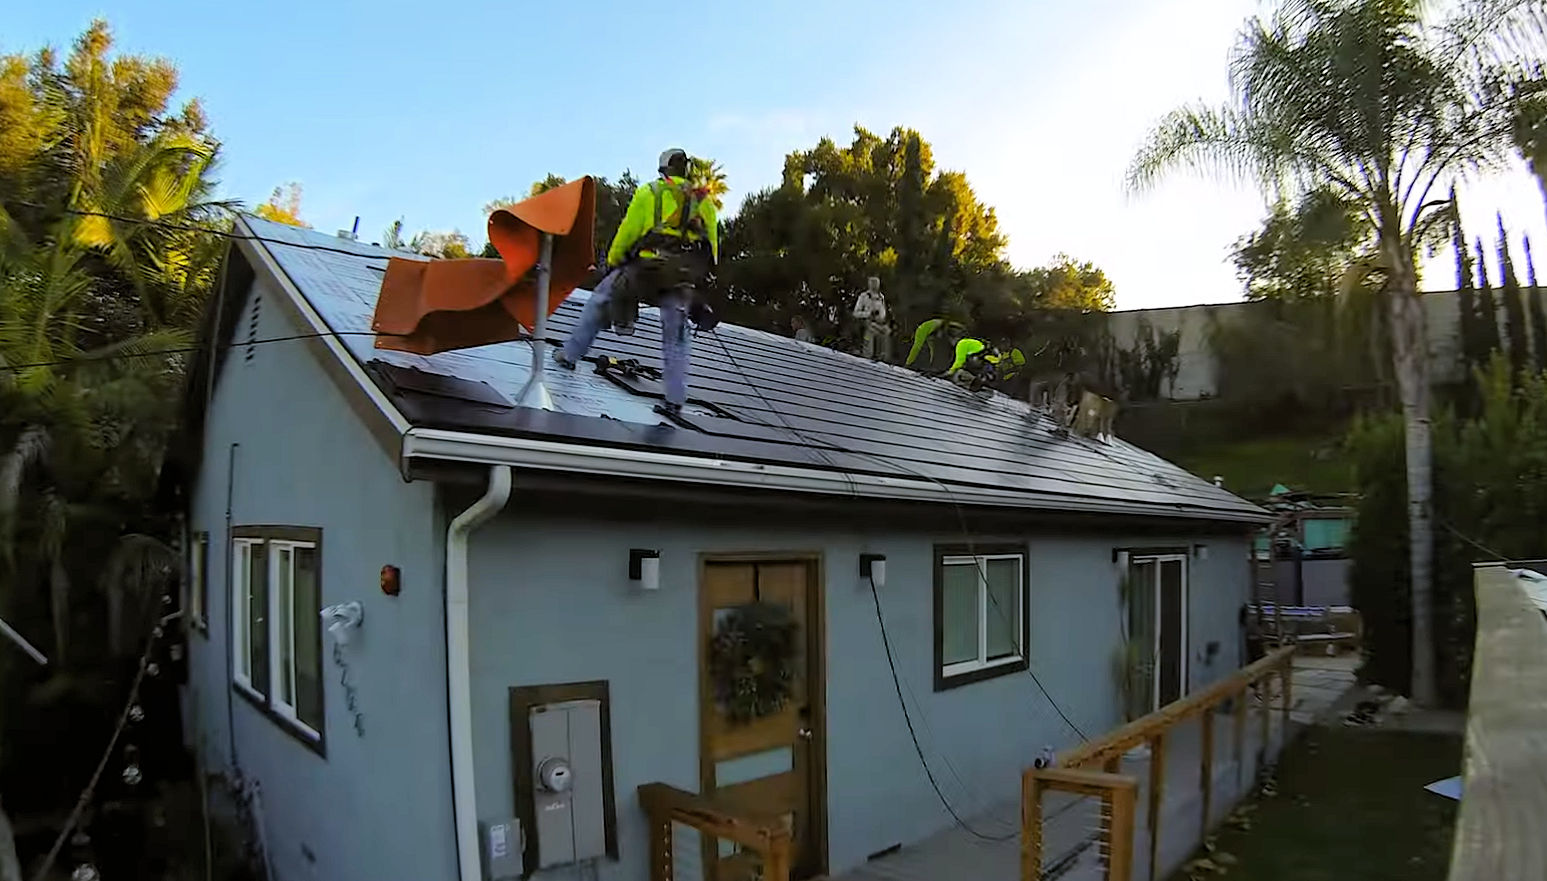 Tesla Solar Roof V3 Gets Its First Review Mspoweruser